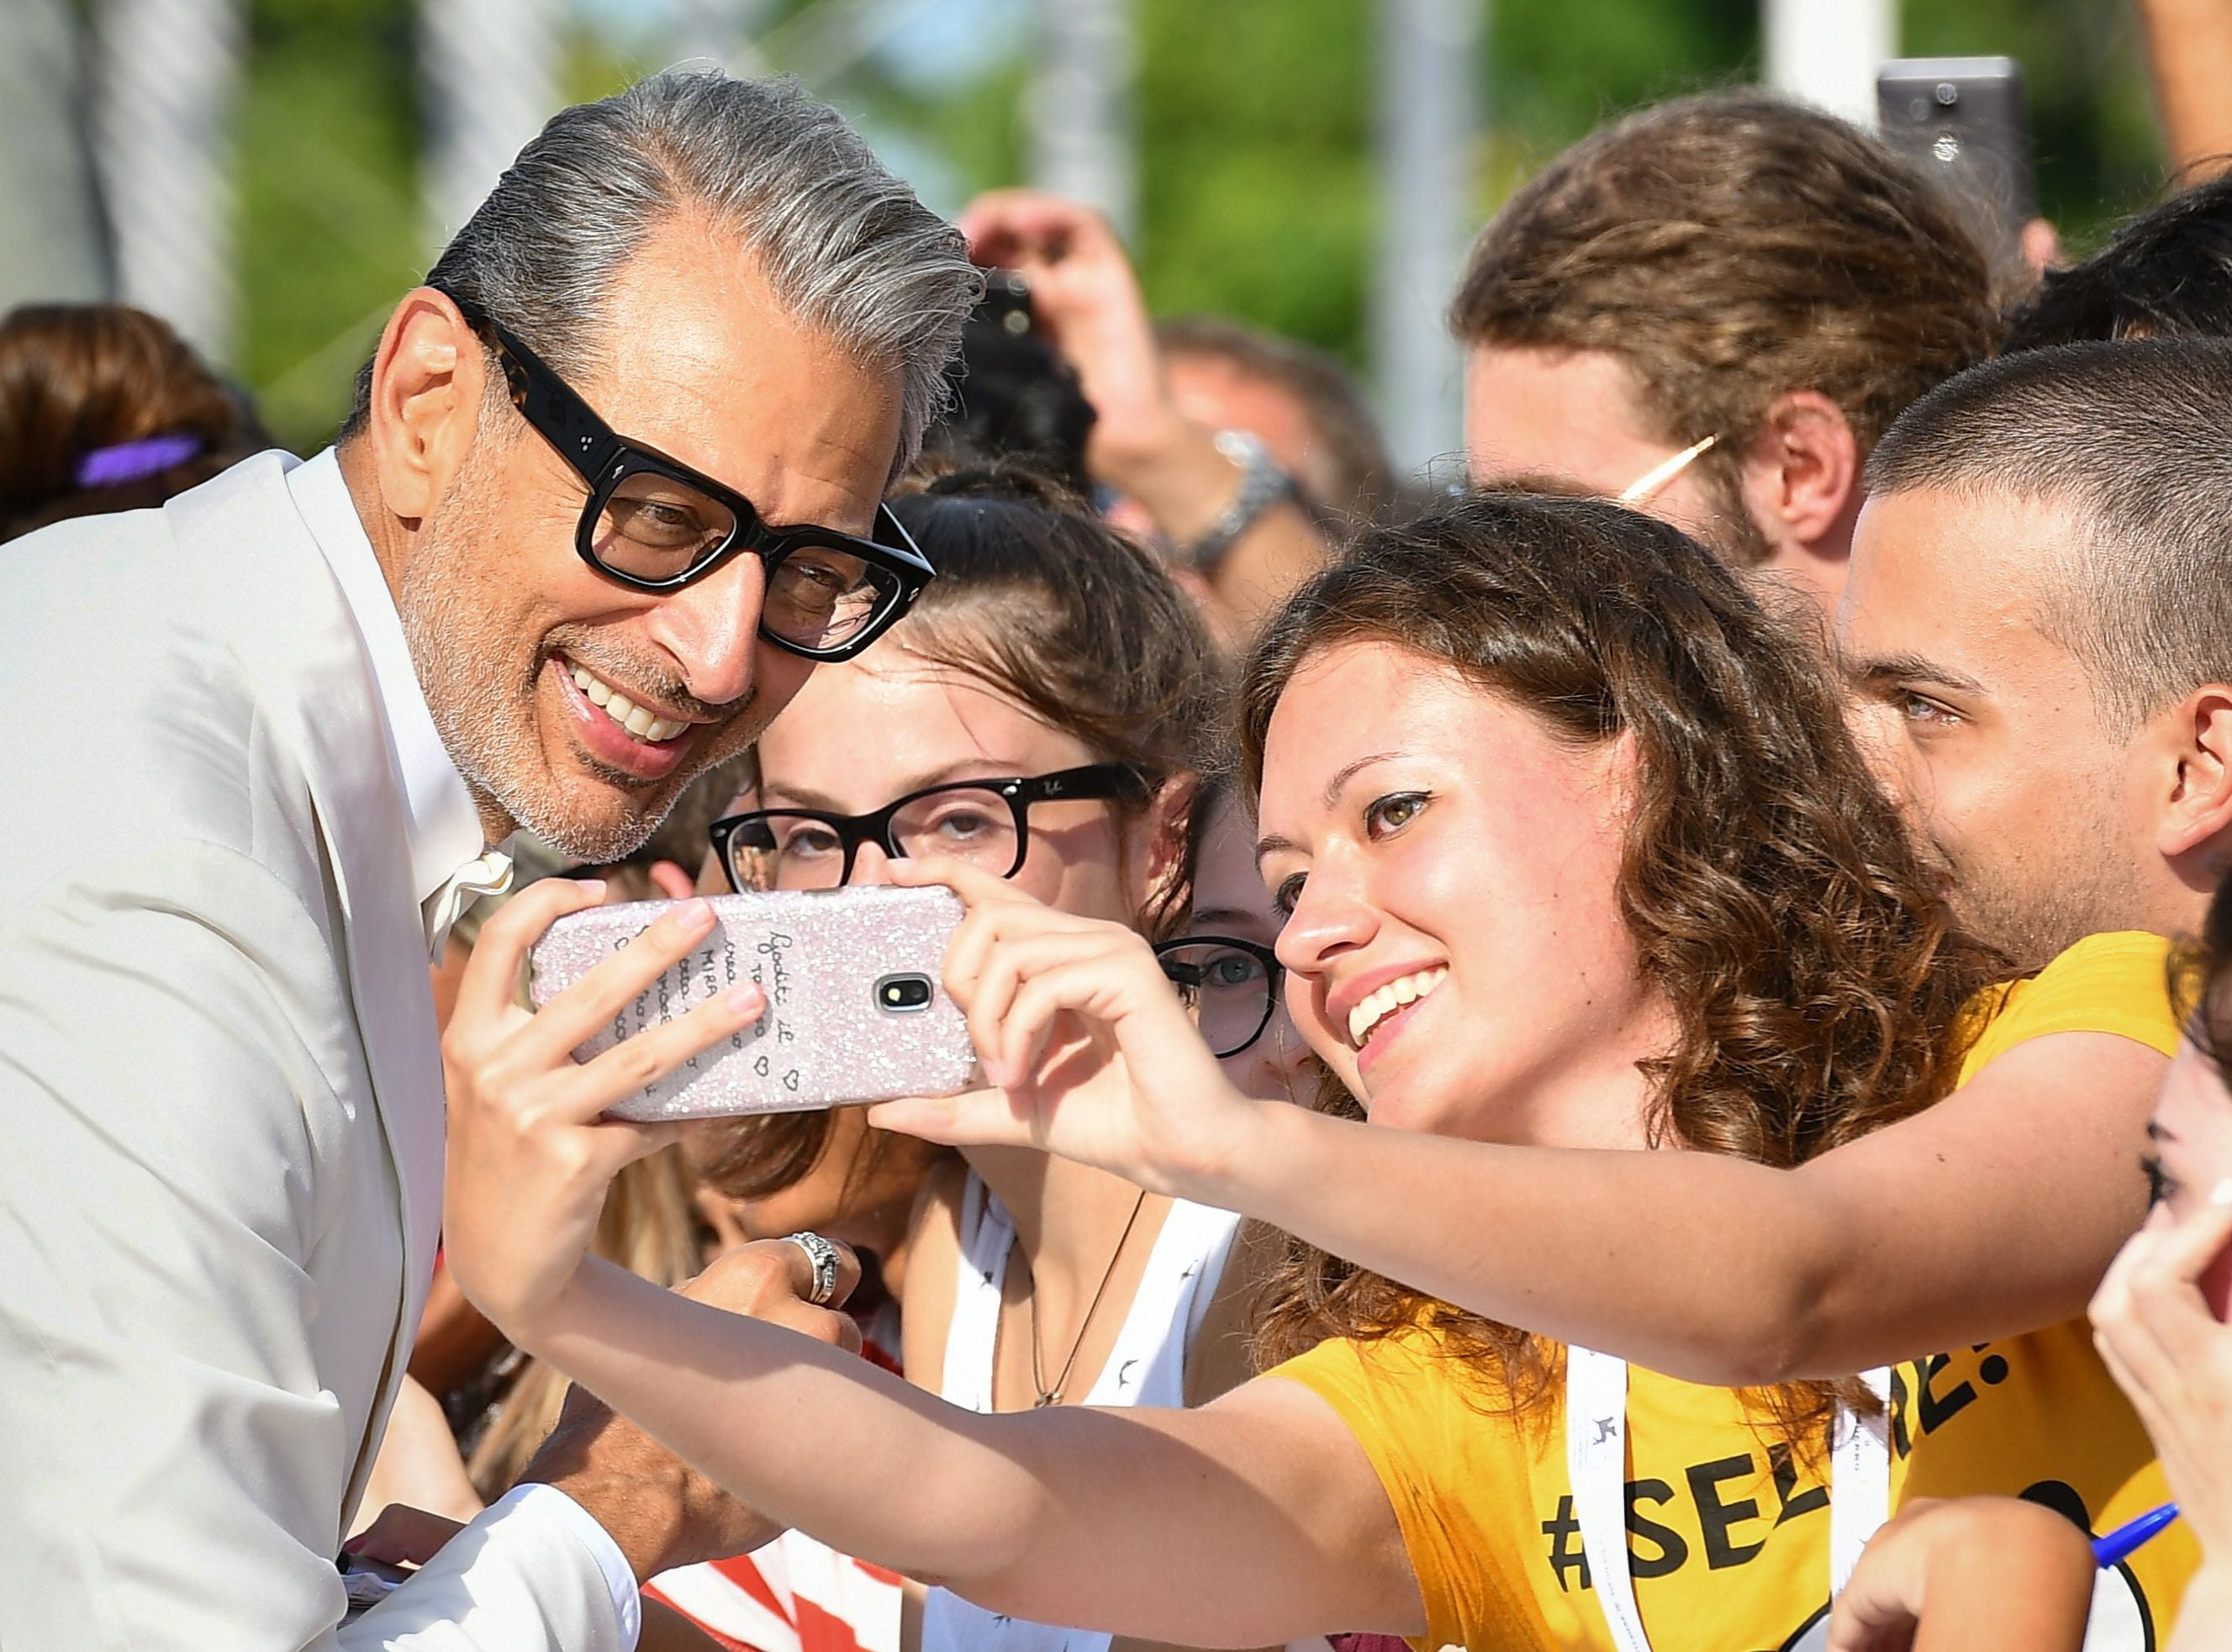 """Actor Jeff Goldblum poses for a selfie photo with a fan as he arrives for the premiere of the film """"The Mountain"""" presented in competition on August 30, 2018 during the 75th Venice Film Festival at Venice Lido. (Photo by Vincenzo PINTO / AFP)VINCENZO PINTO/AFP/Getty Images ORIG FILE ID: AFP_18P9ML"""